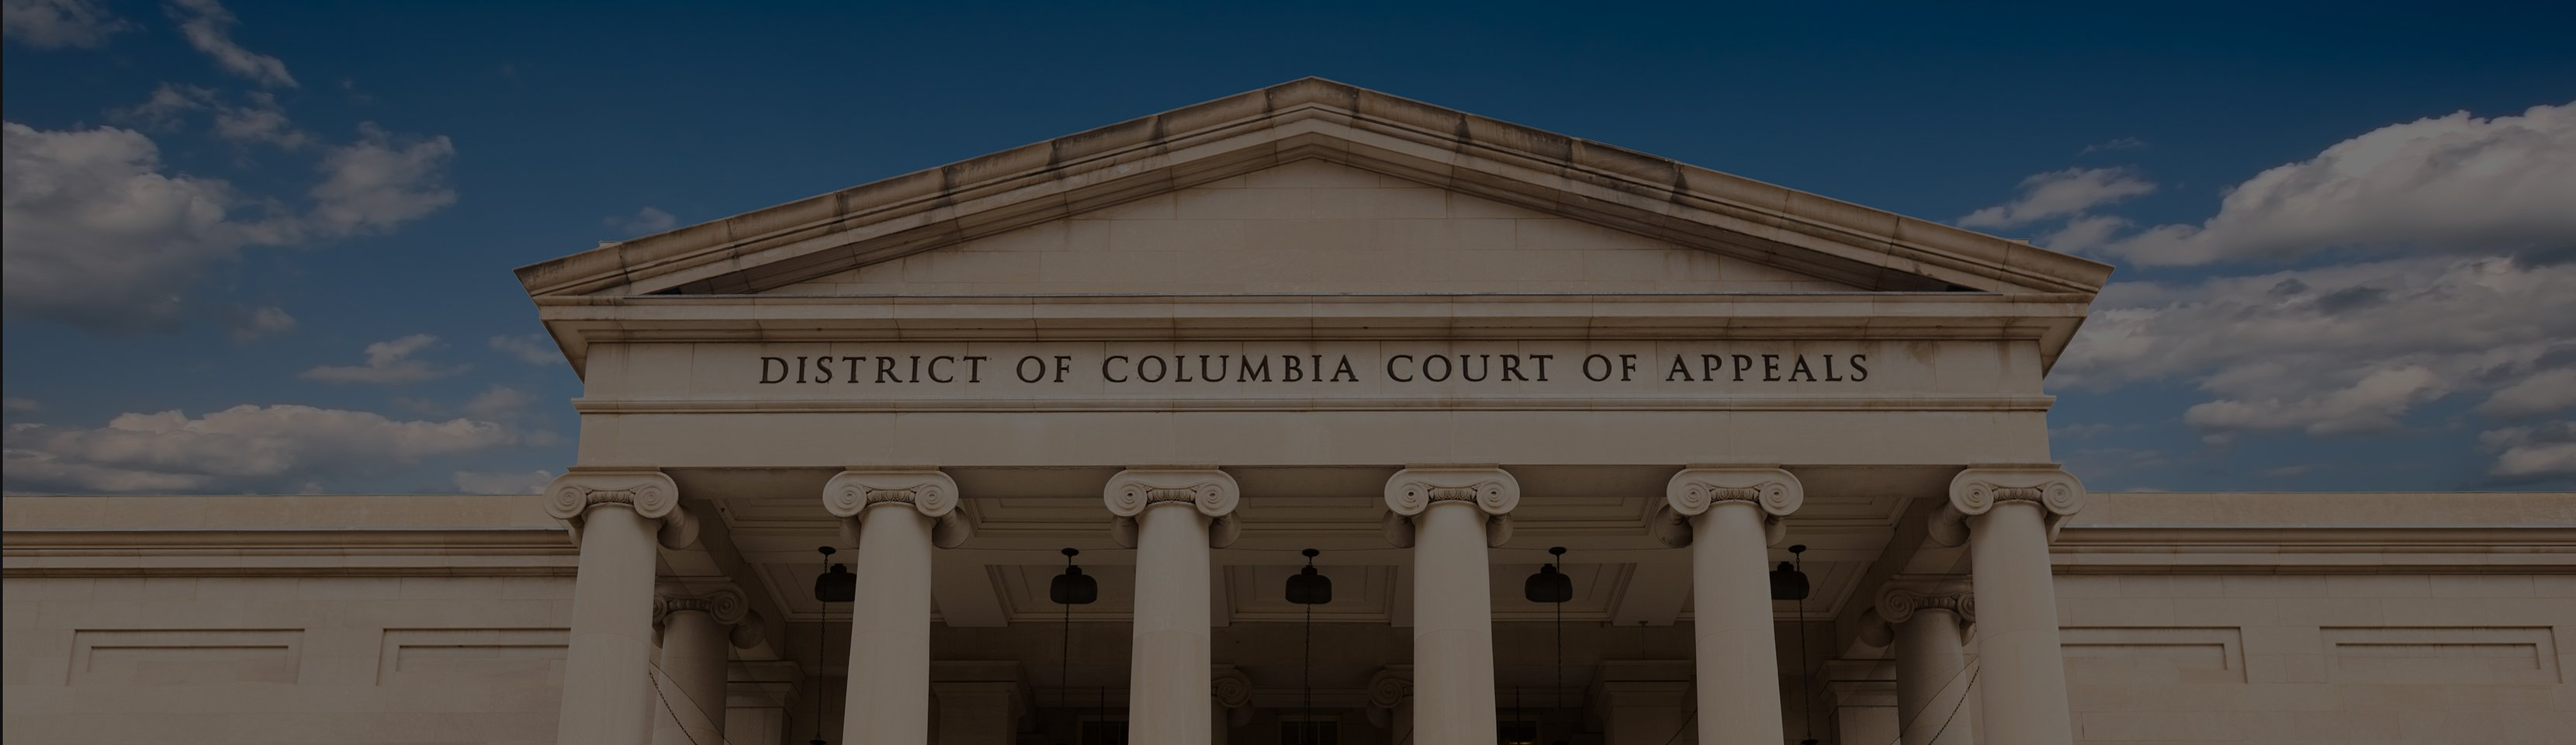 Goodell DeVries's Appellate Team Secures Victory by Judicial Estoppel in D.C. Court of Appeals